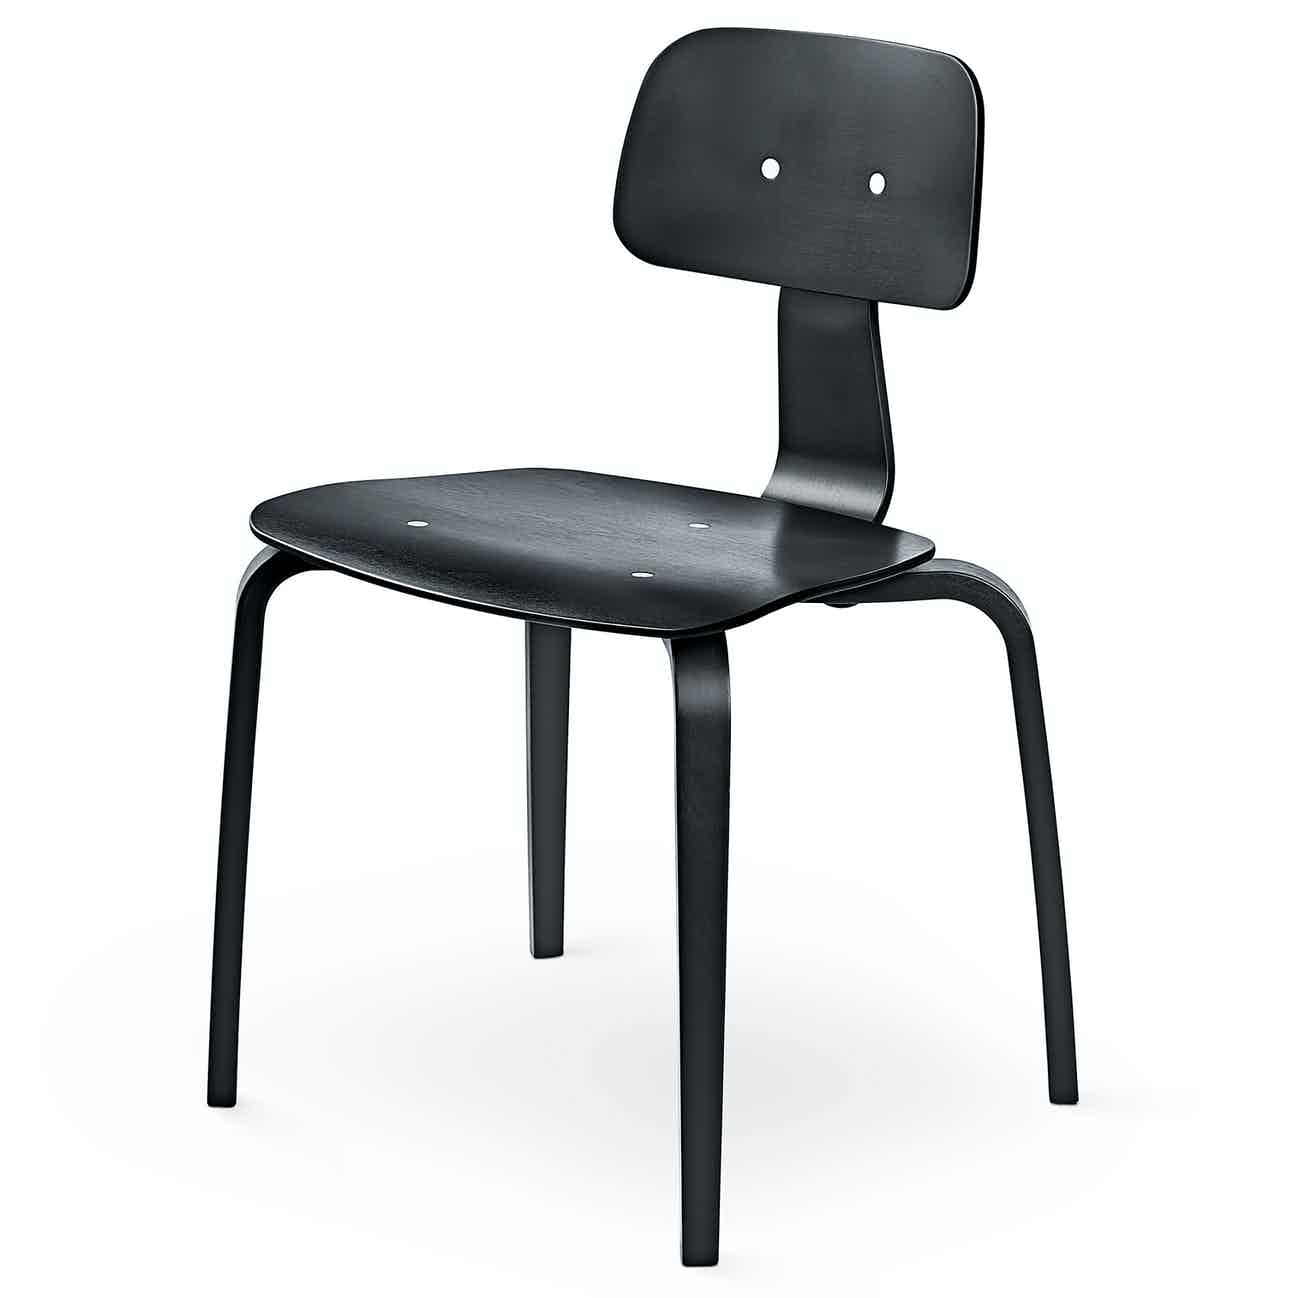 Engelbrechts kevi 2070 chair black angle haute living